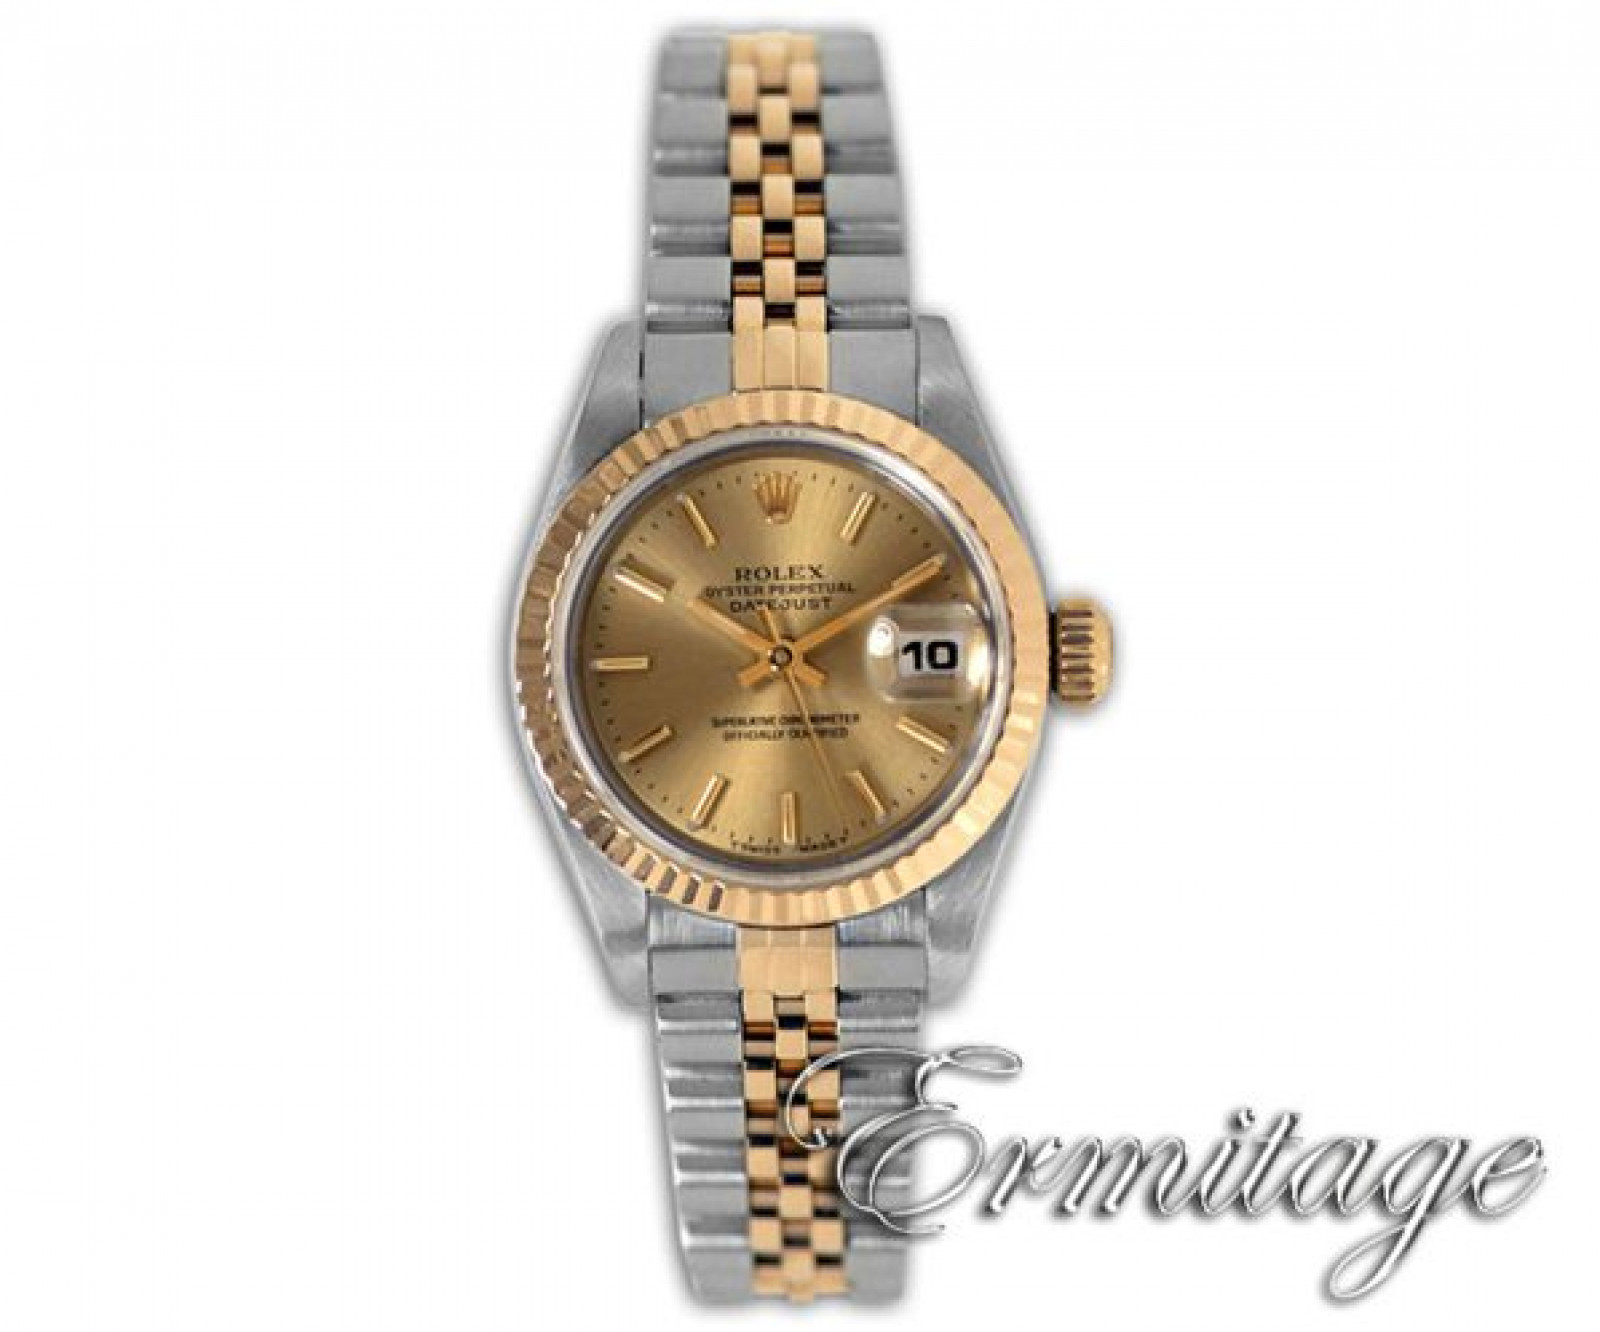 Pre-Owned Gold & Steel Rolex Datejust 69173 Year 1999